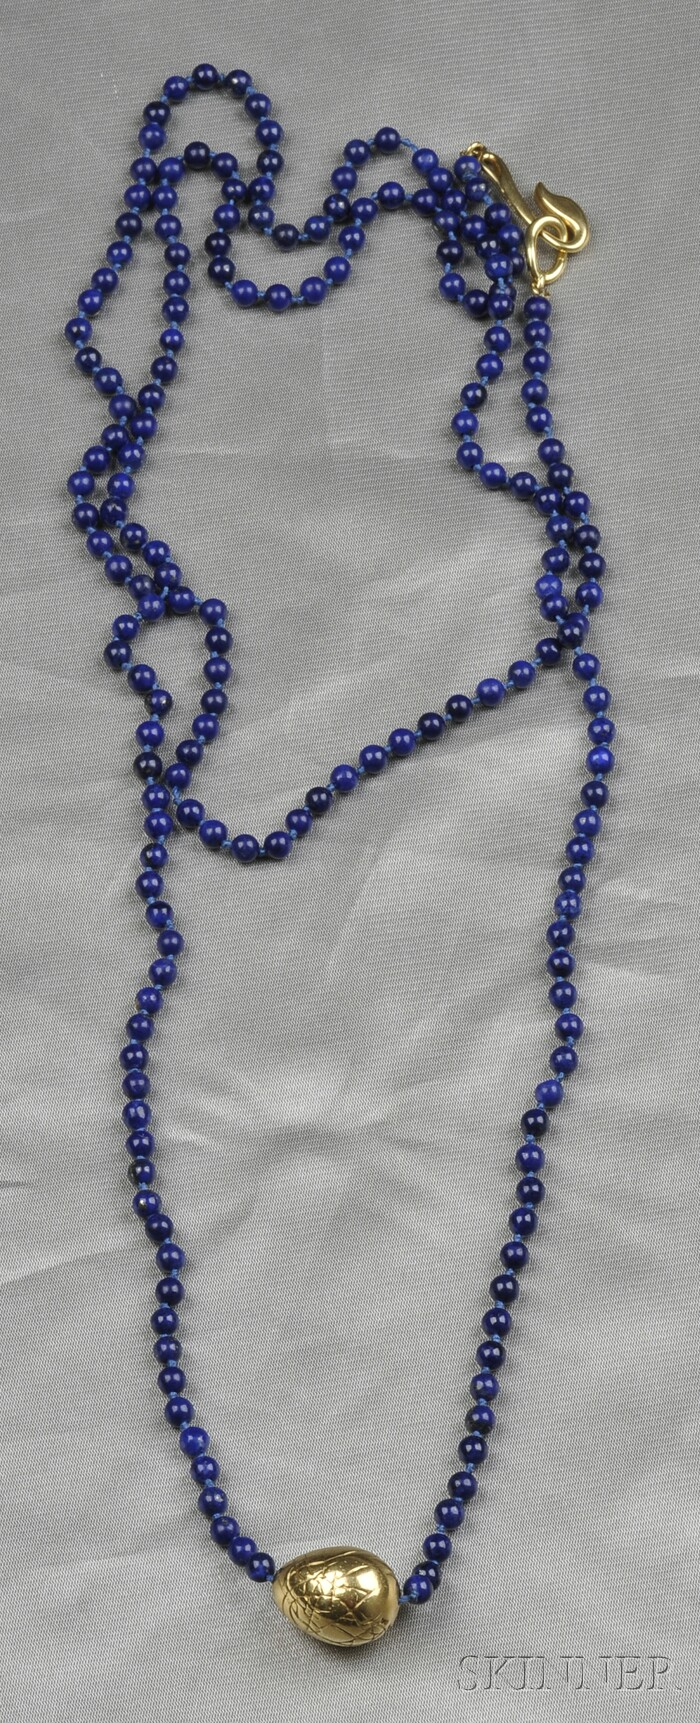 18kt Gold and Lapis Bead Necklace, Angela Cummings